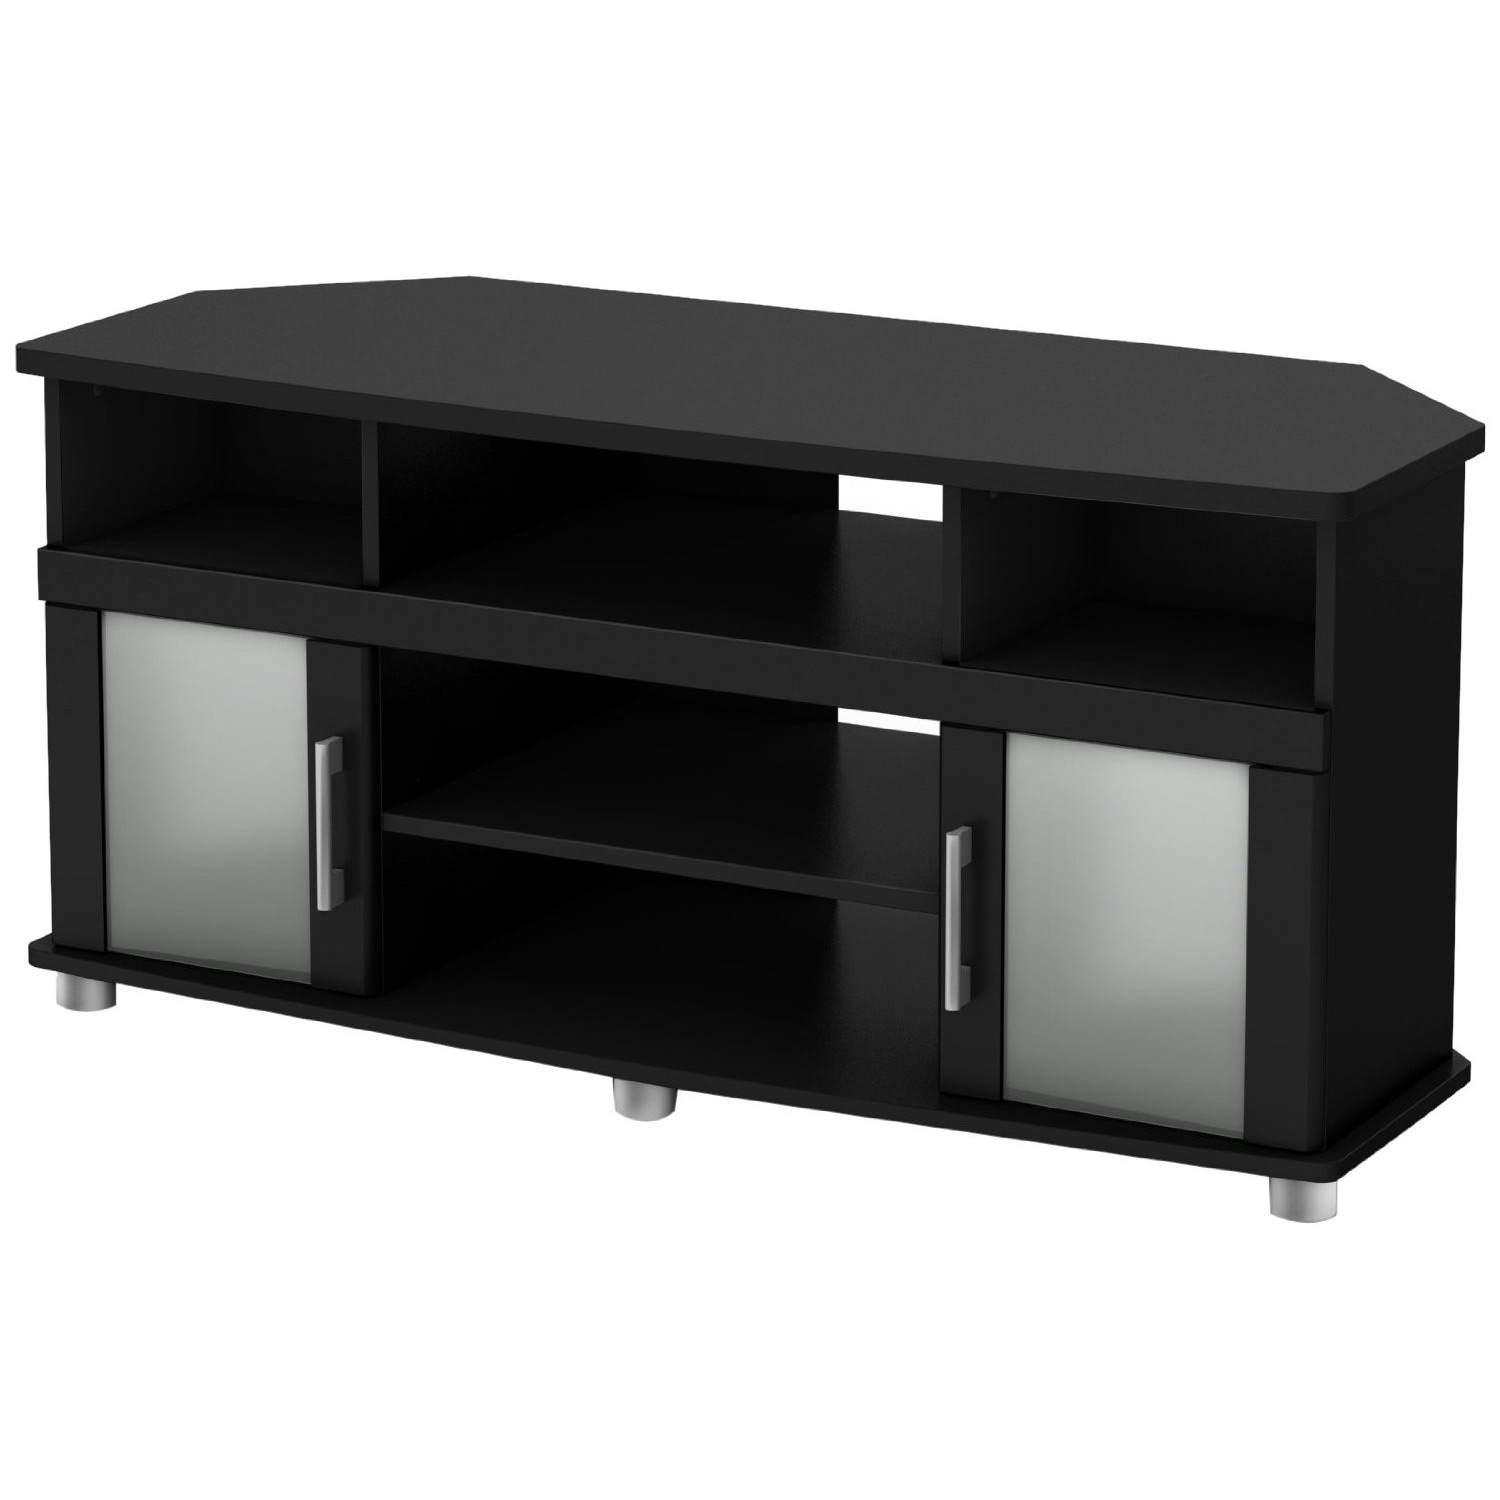 This Black Corner TV Stand with Frosted Glass Doors in pure black finish combines curved lines, silver finish metal handles and frosted glass doors for popular contemporary style. It is a perfect blend of form and function, featuring both open and closed storage options. The living room has never been so tidy and organized. It can accommodate a tv up to 50-inch and its weight capacity is 150-pound. For complete interior dimensions see spec sheet. Also available in chocolate finish. The back is not finished and the accessories are not included.